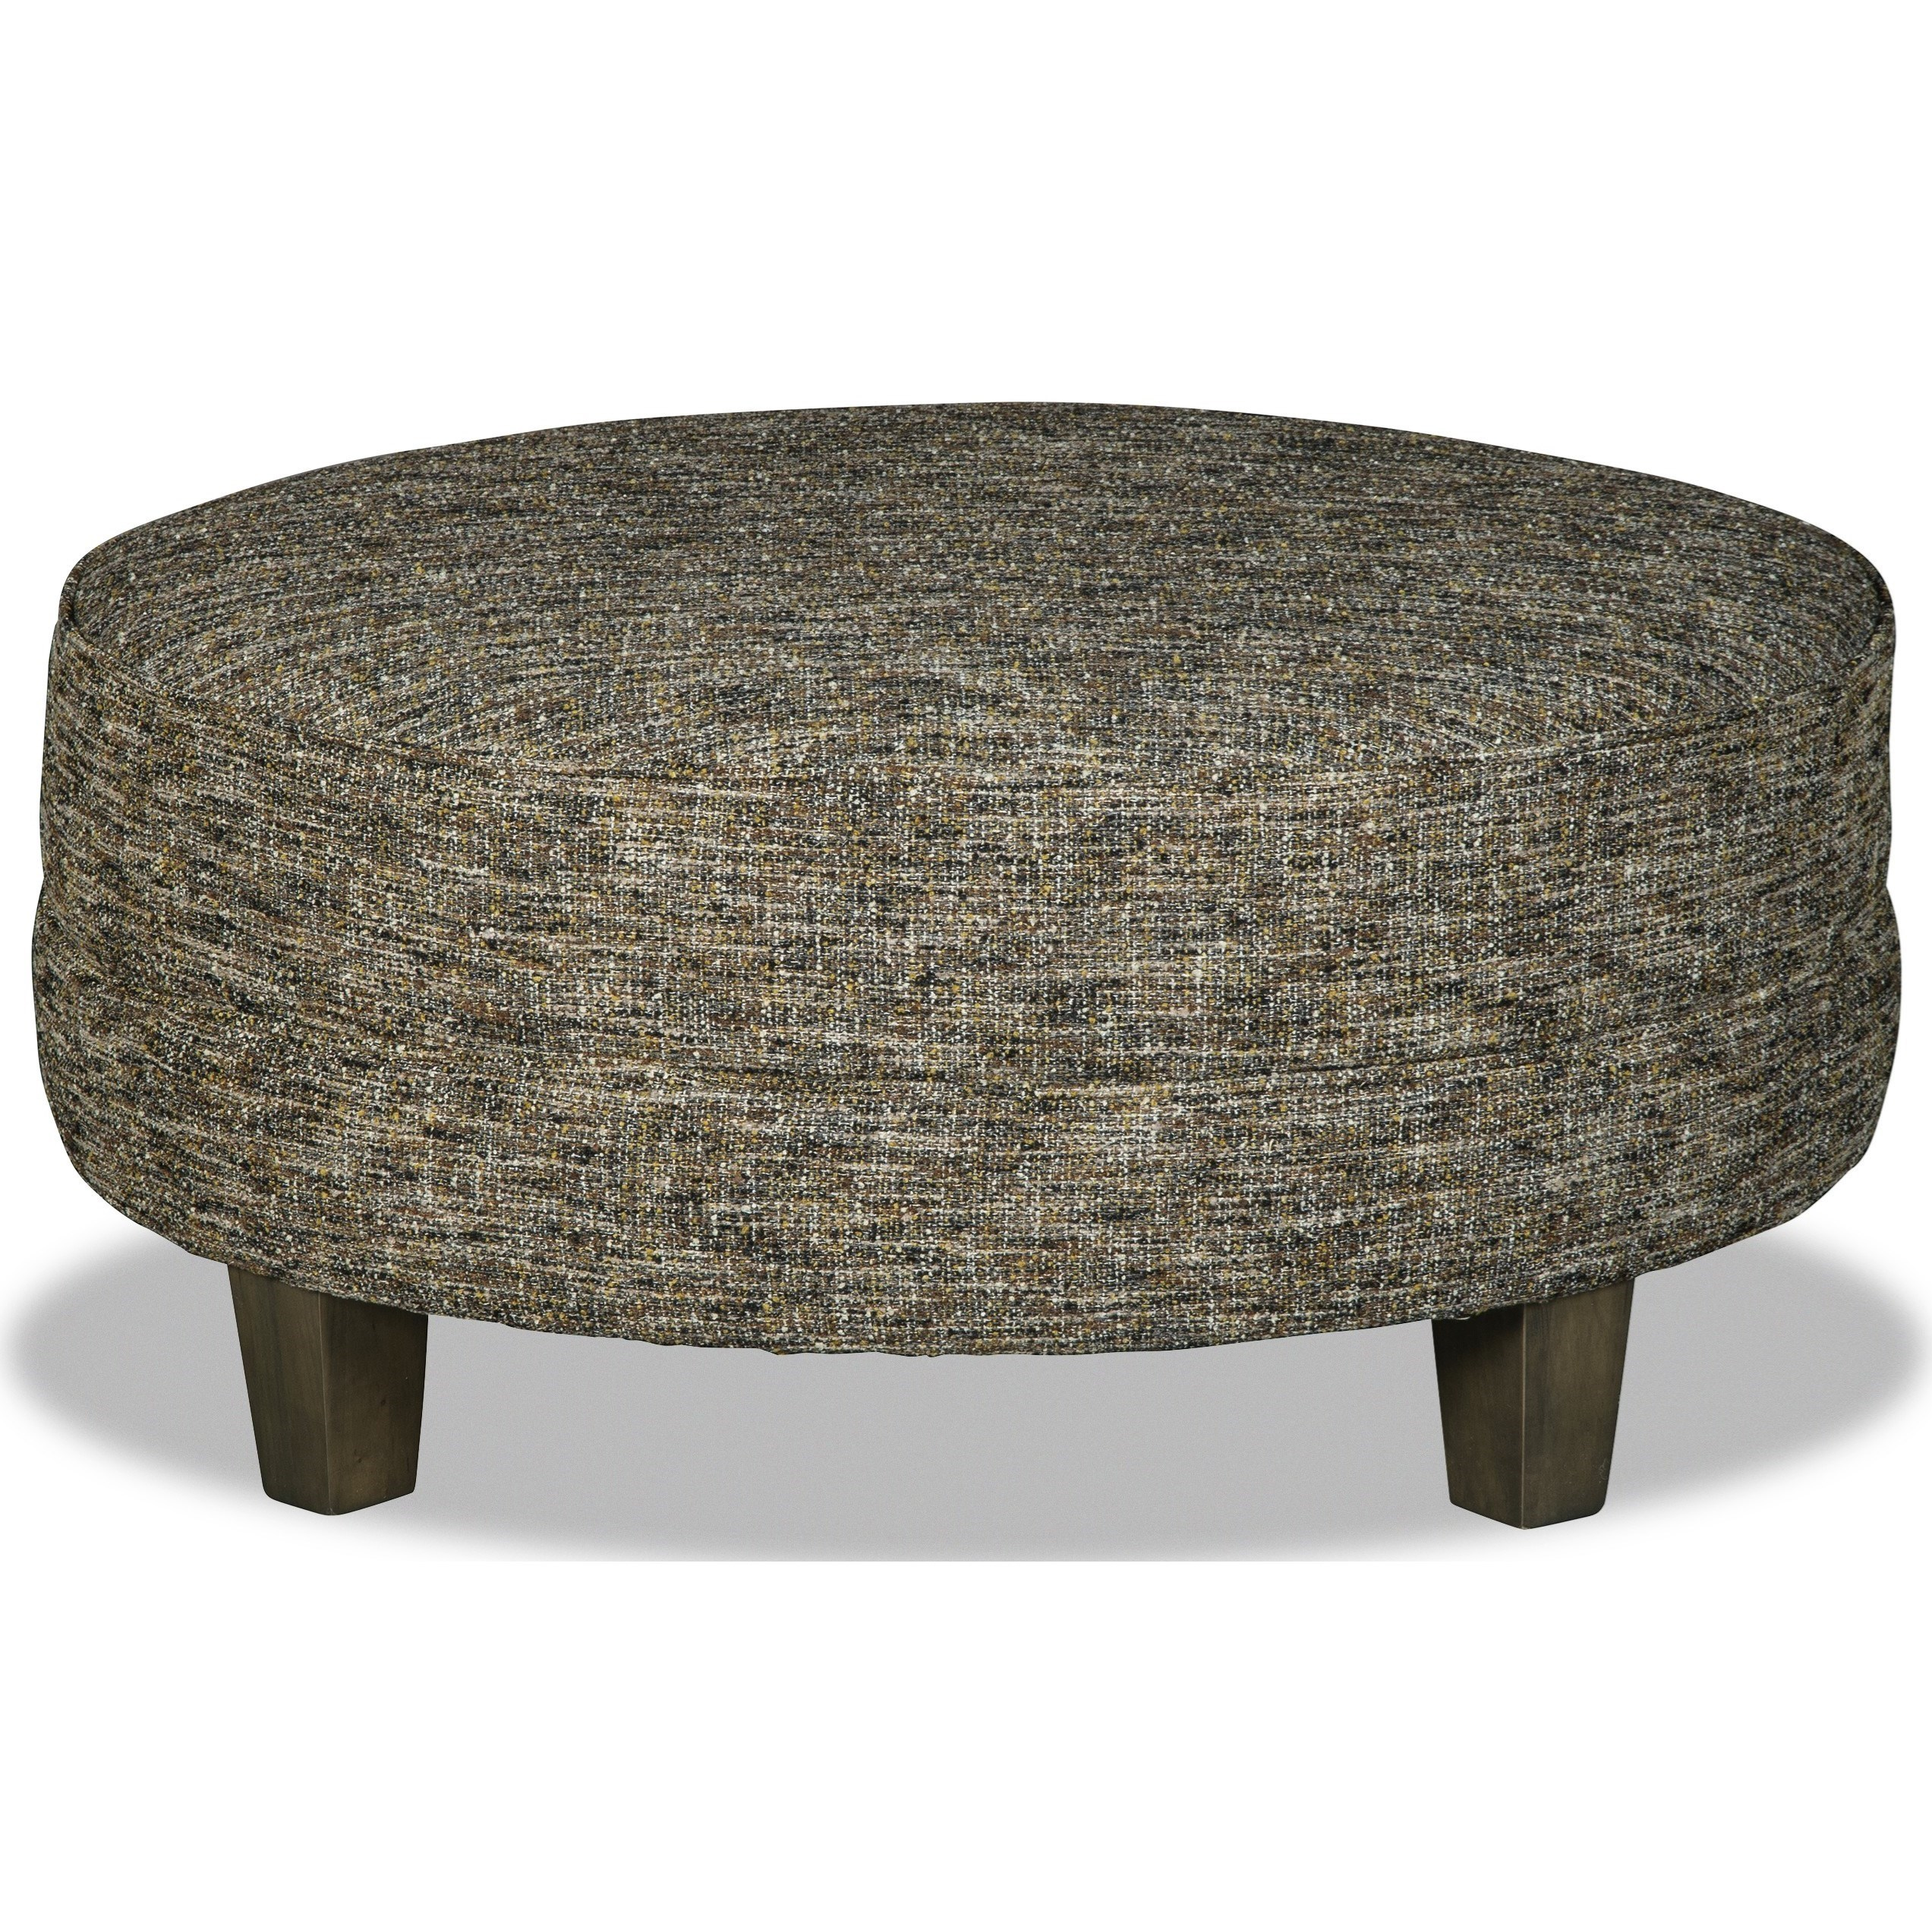 M9 Custom - Design Options Customizable Large Round Cocktail Ottoman by Craftmaster at Home Collections Furniture